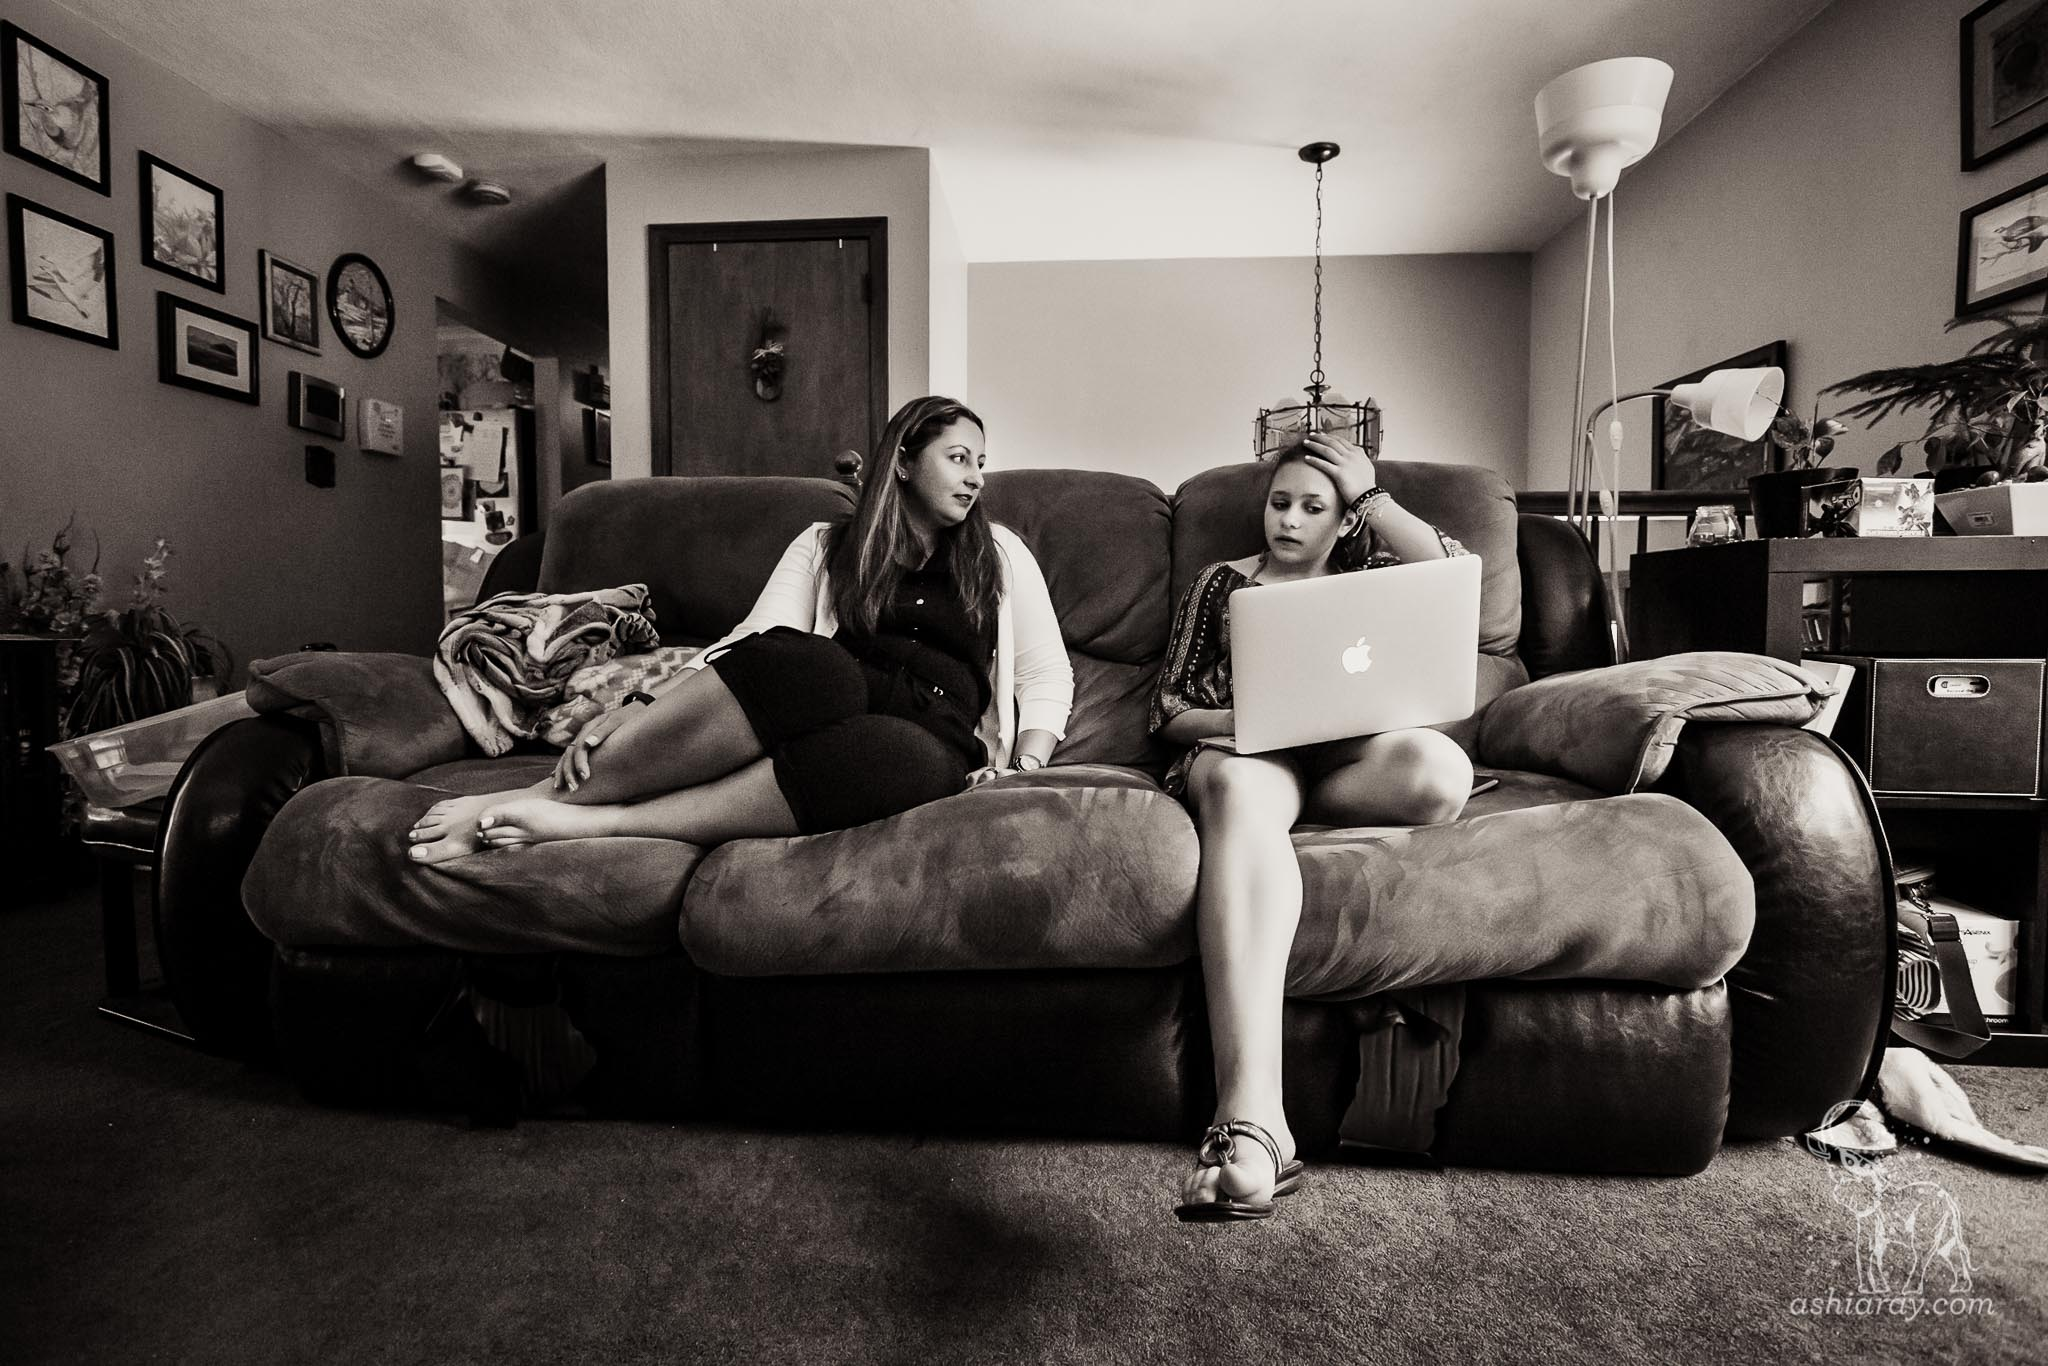 Mother and daughter talk on the sofa while using a laptop computer